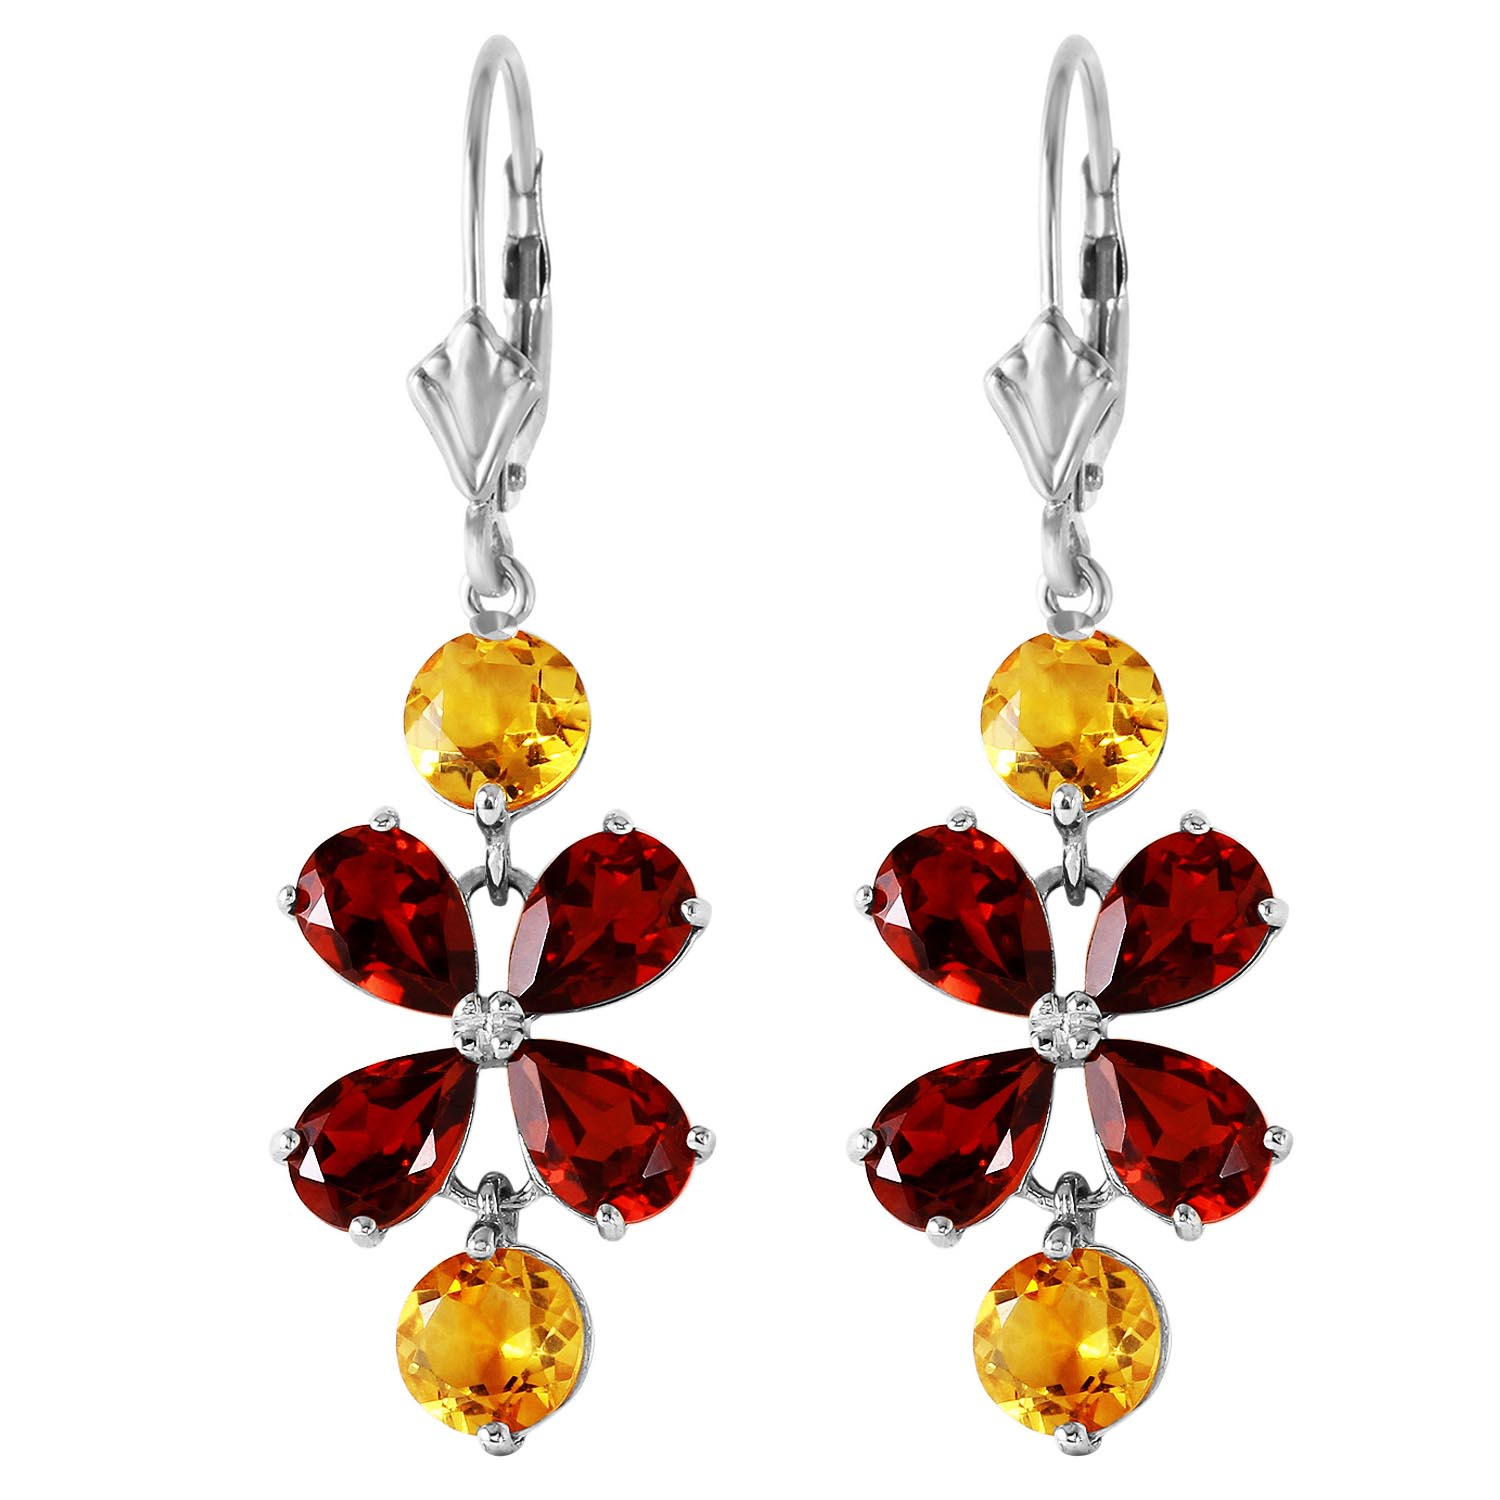 Garnet and Citrine Blossom Drop Earrings 5.32ctw in 9ct White Gold